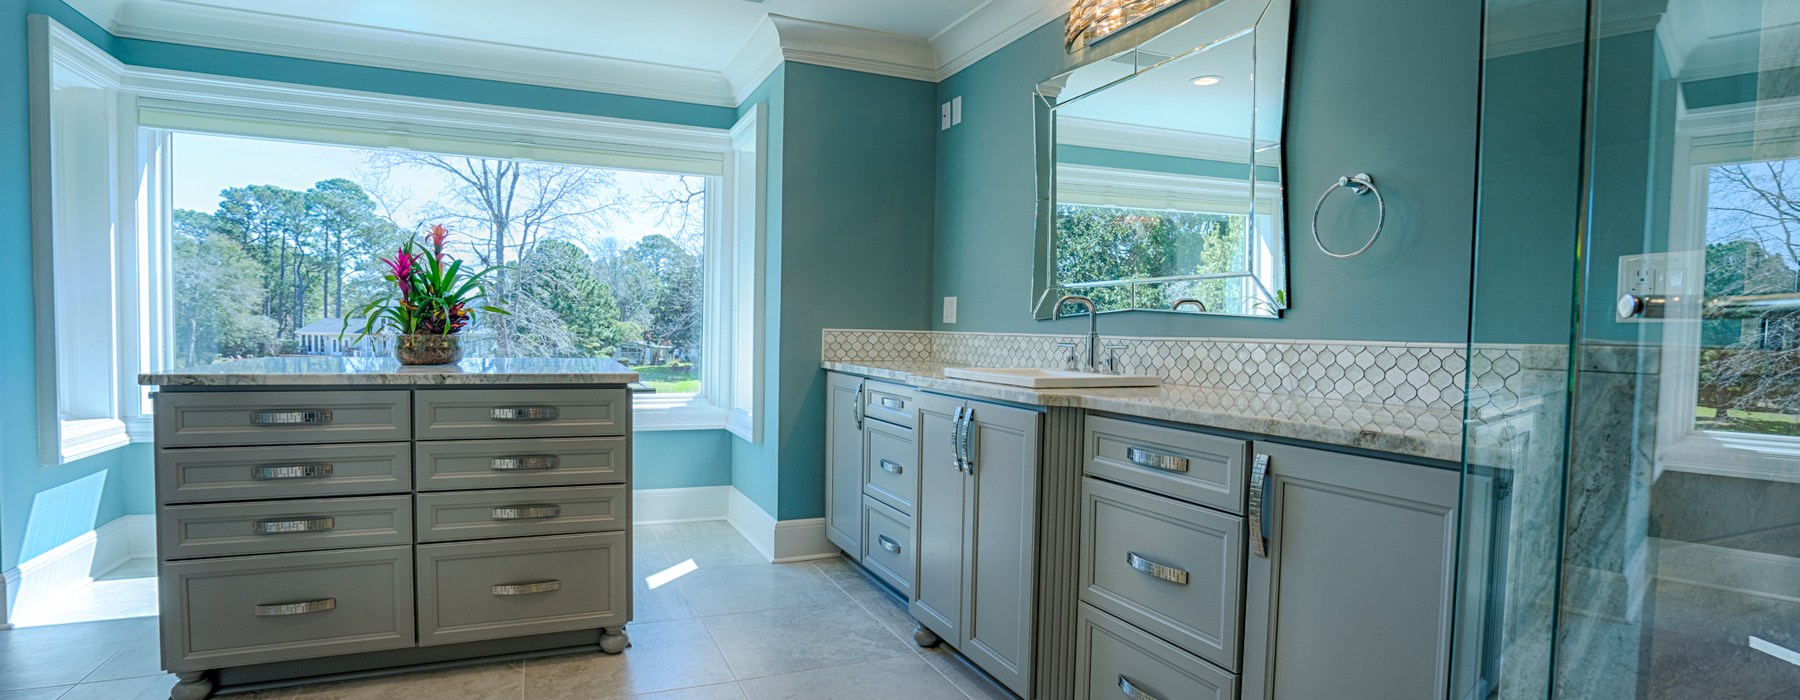 Myrtle Beach Remodeling Company